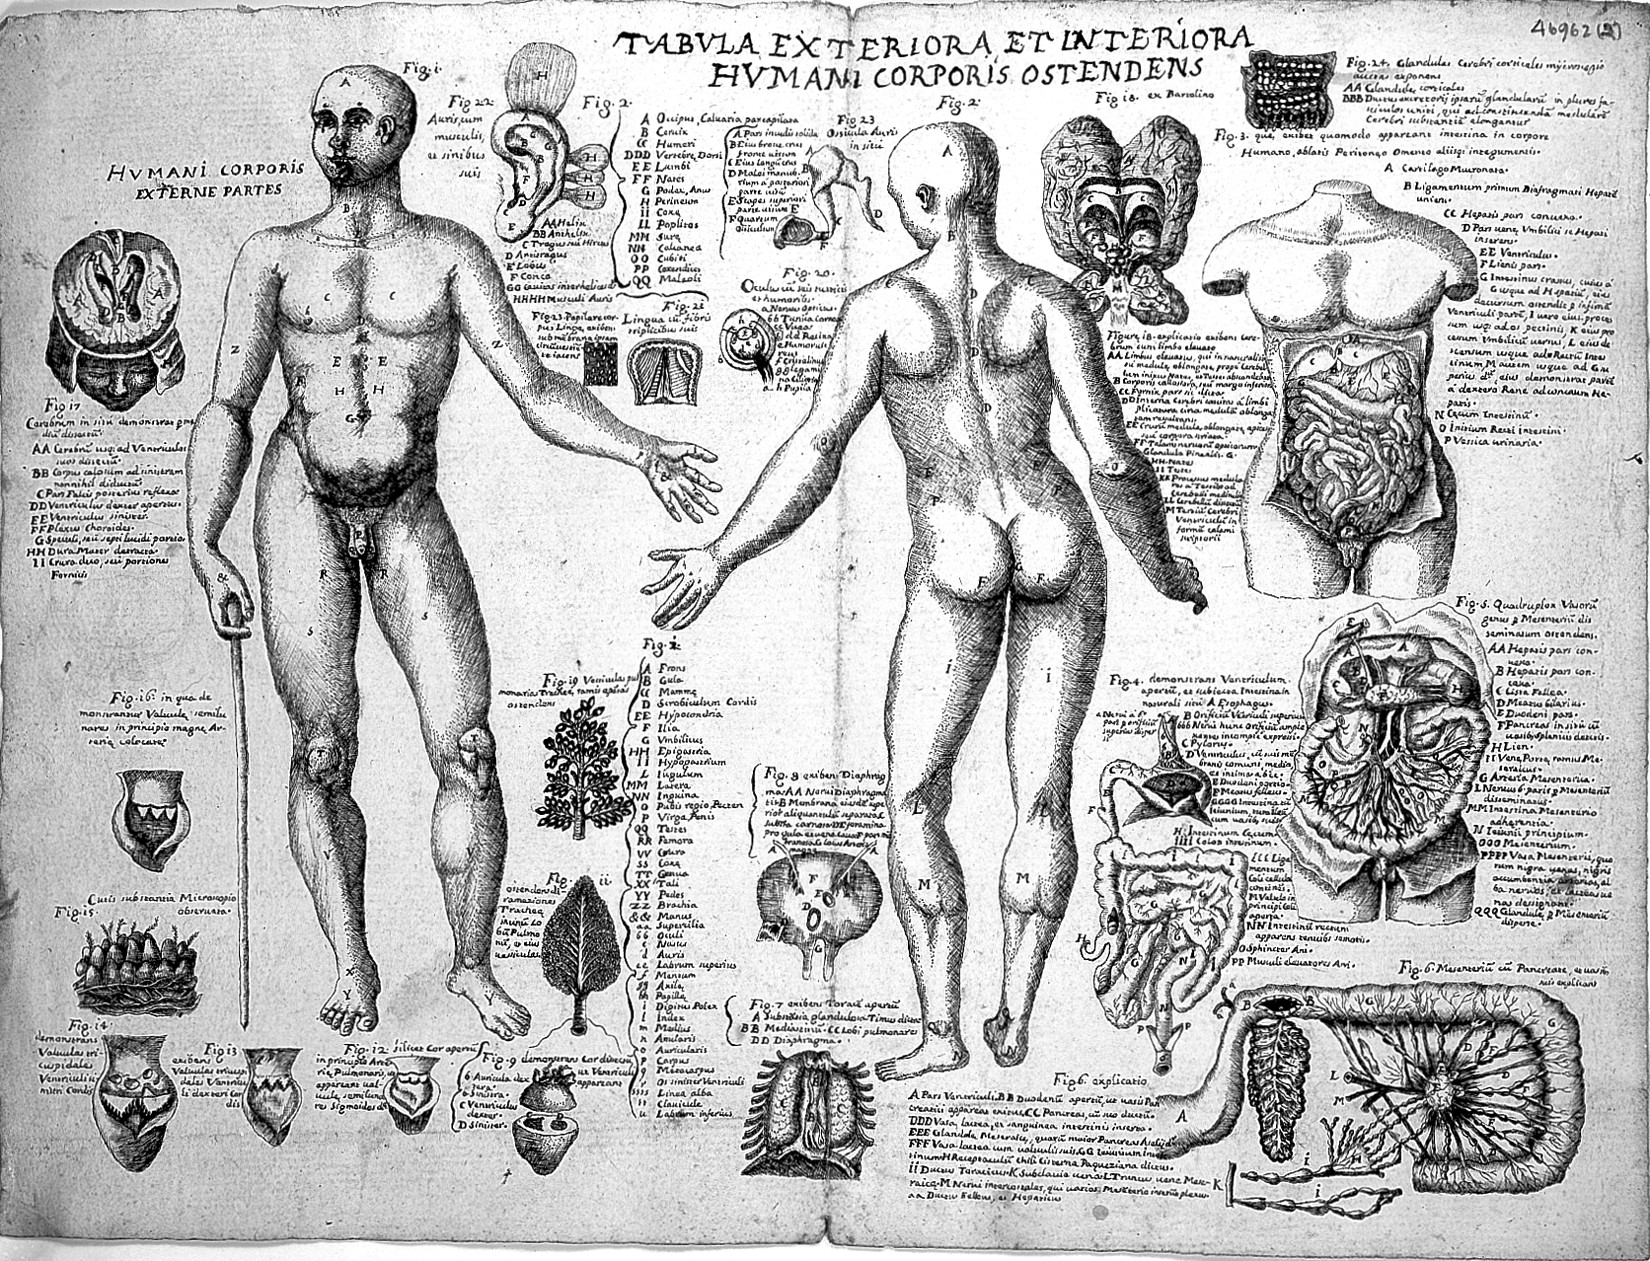 Fileanatomical Sketches Valverde Anatomy Early 17th Century